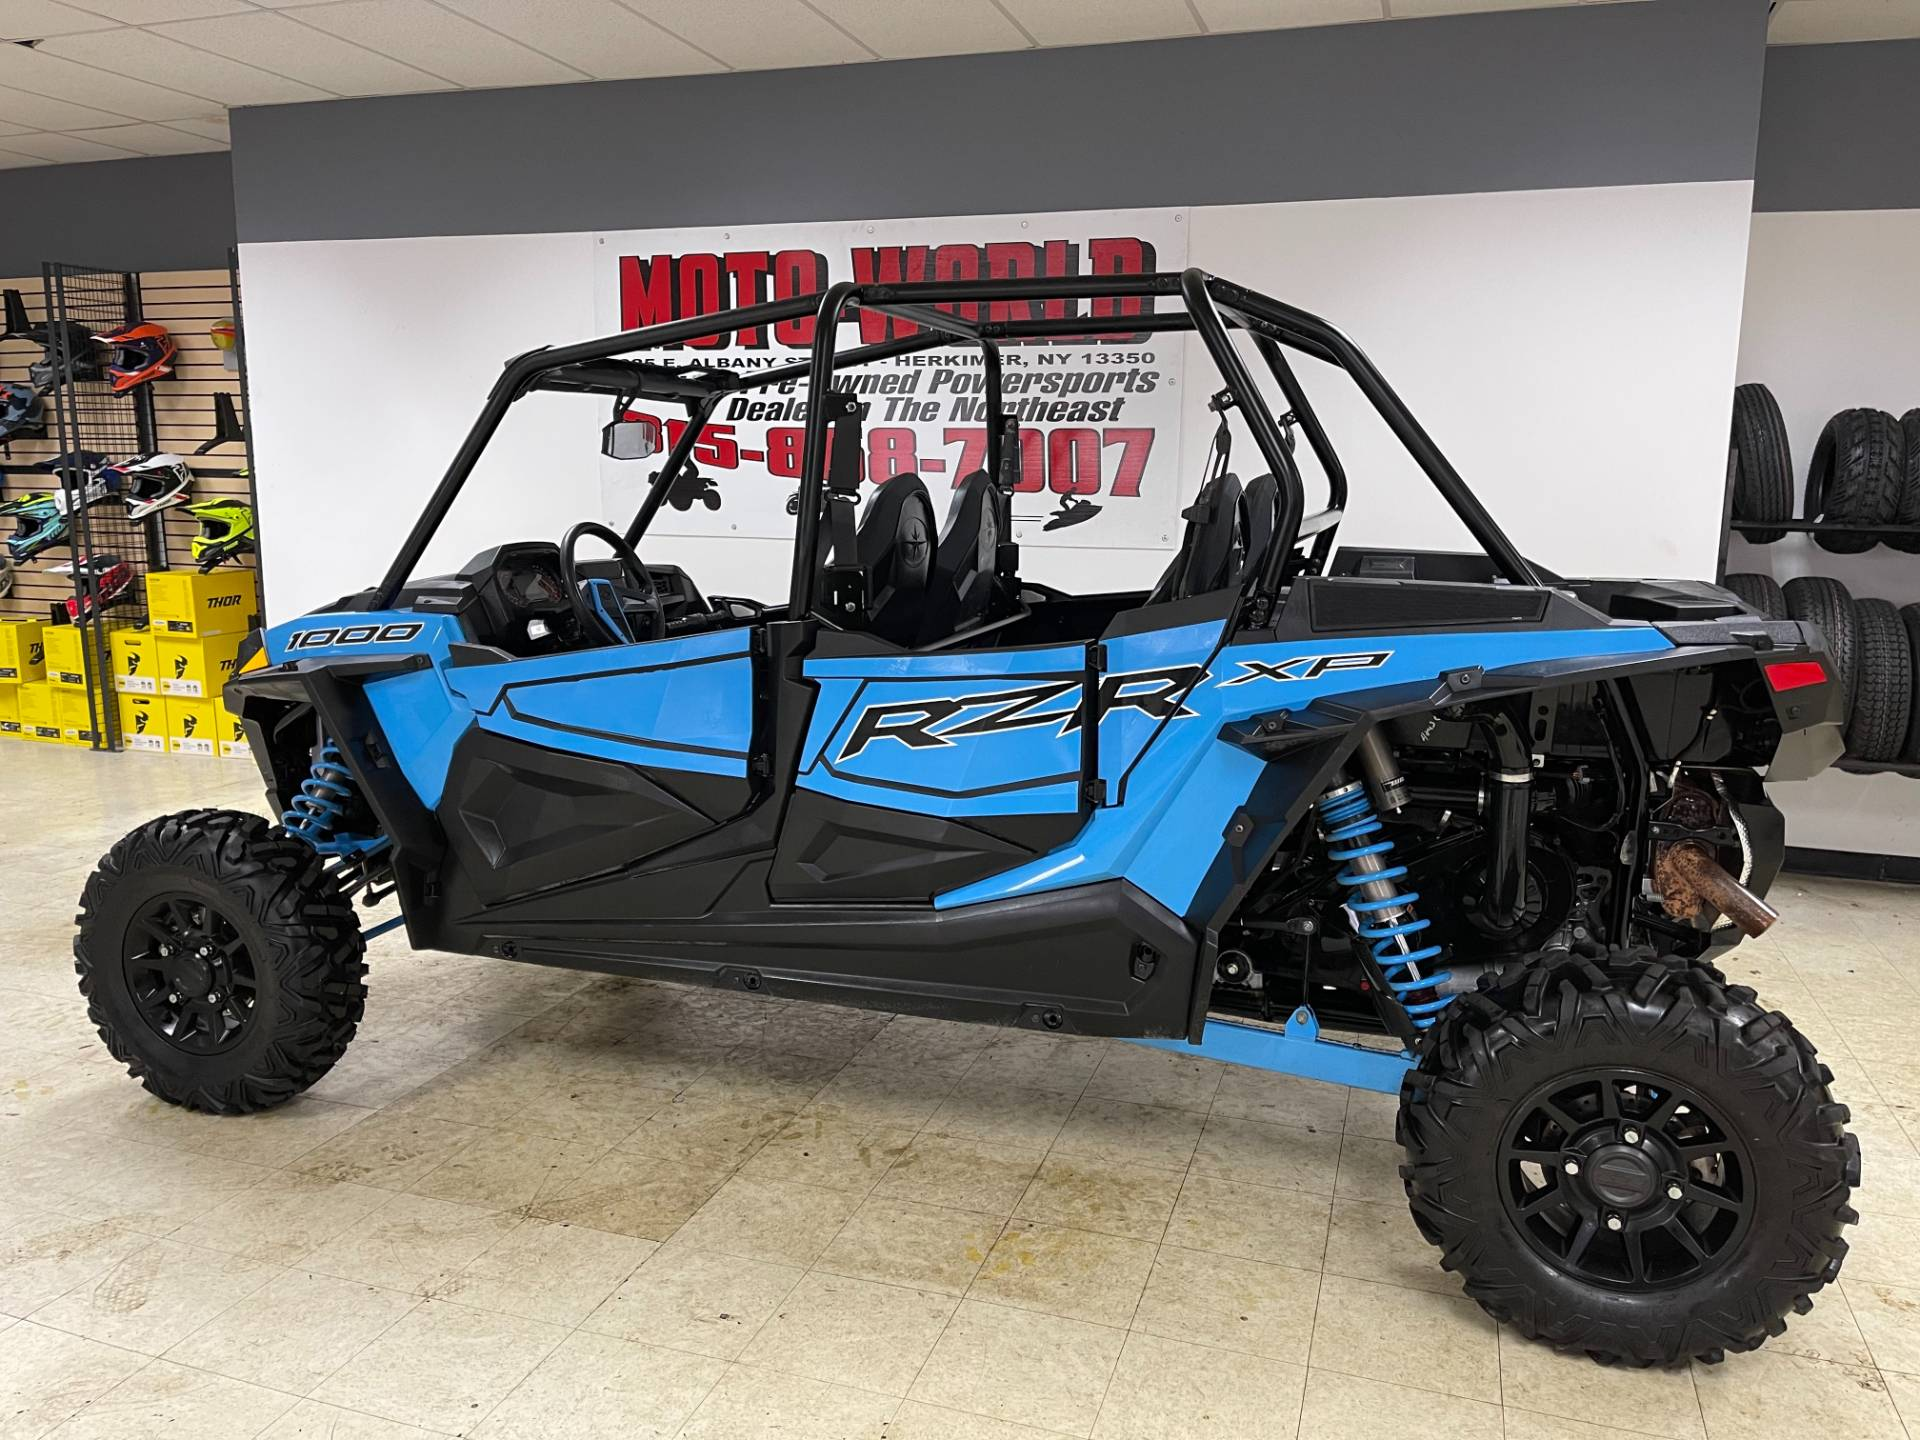 2020 Polaris RZR XP 4 1000 in Herkimer, New York - Photo 2